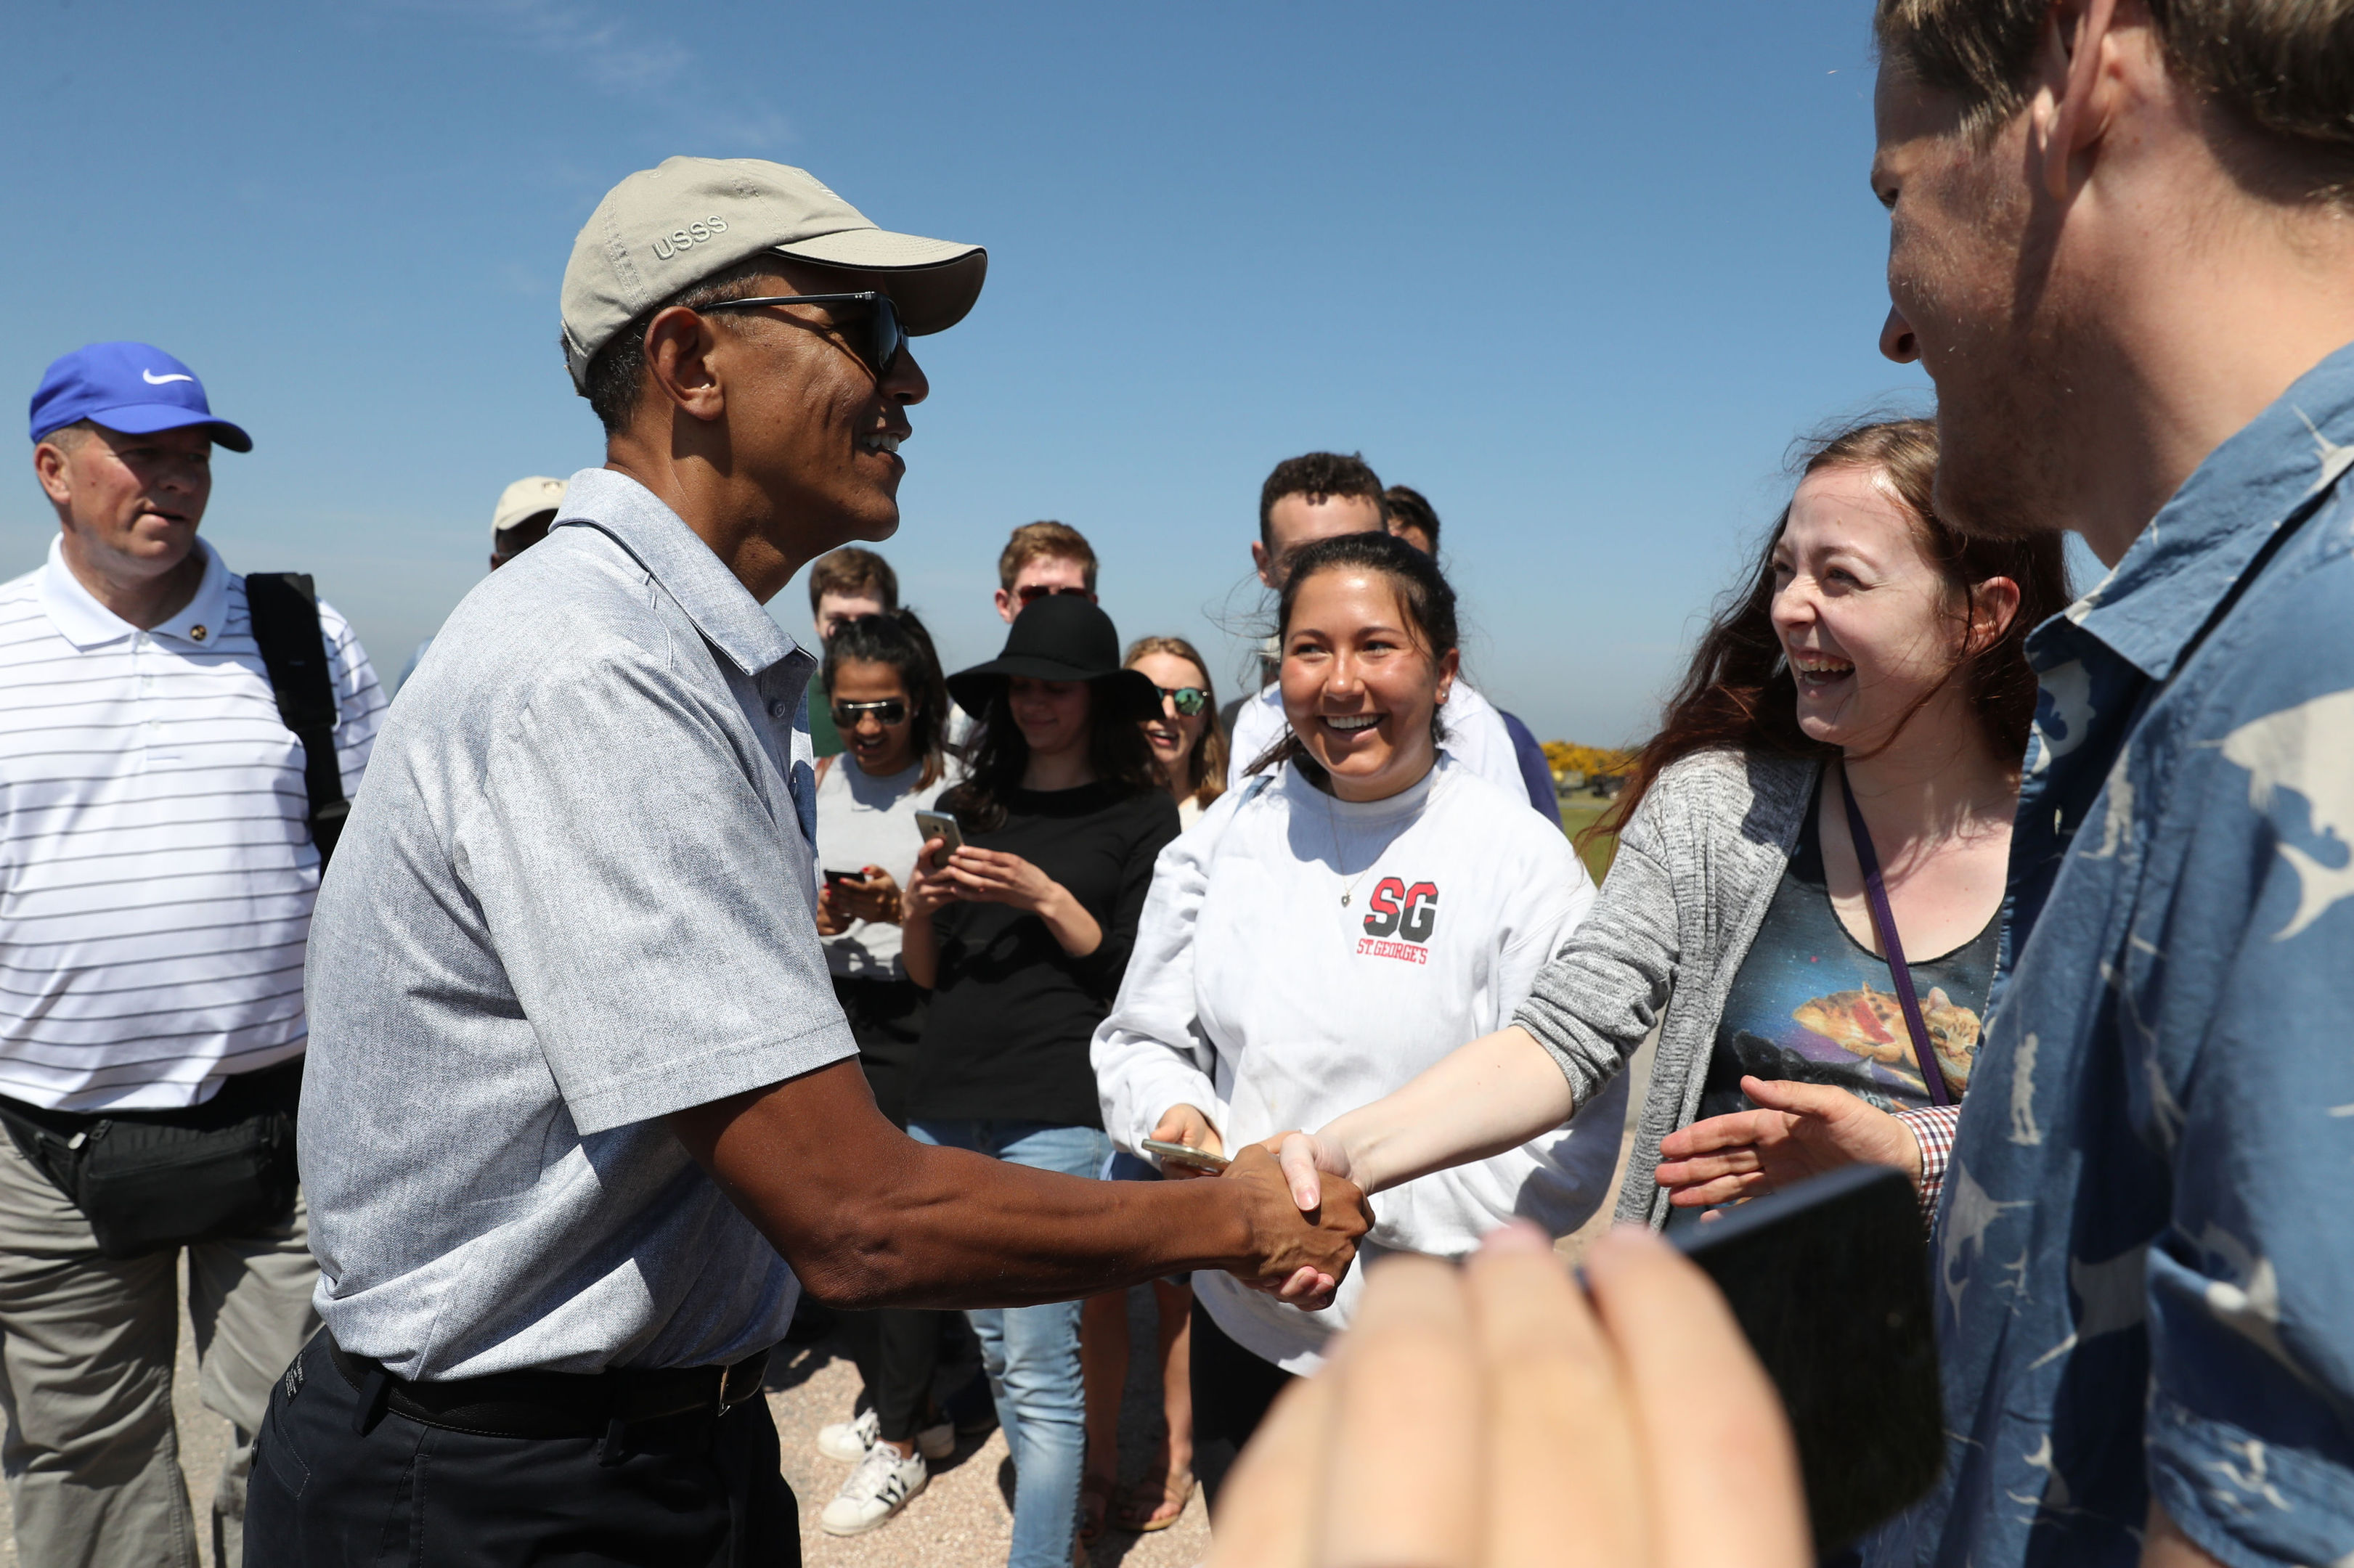 Obama mingles with the St Andrews crowd.